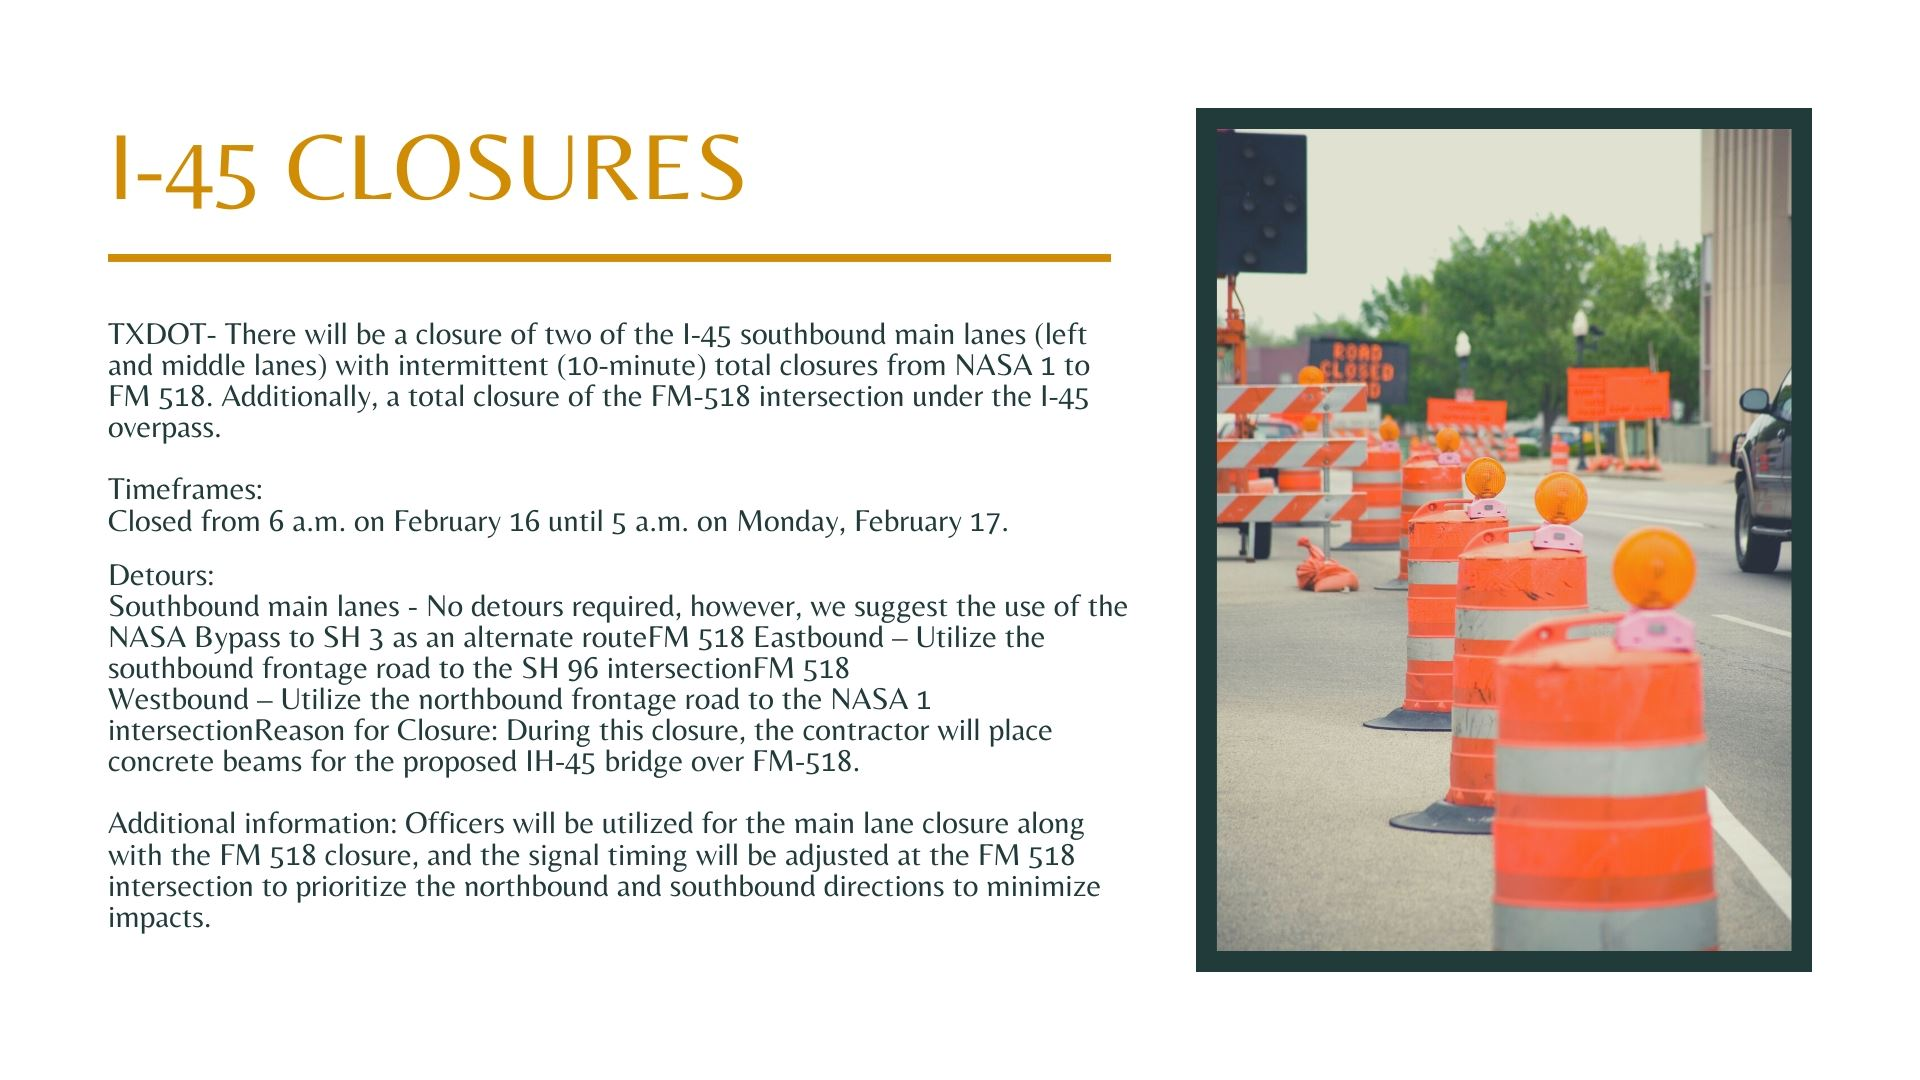 TXDOT- There will be a closure of two of the I-45 southbound main lanes (left and middle lanes) with